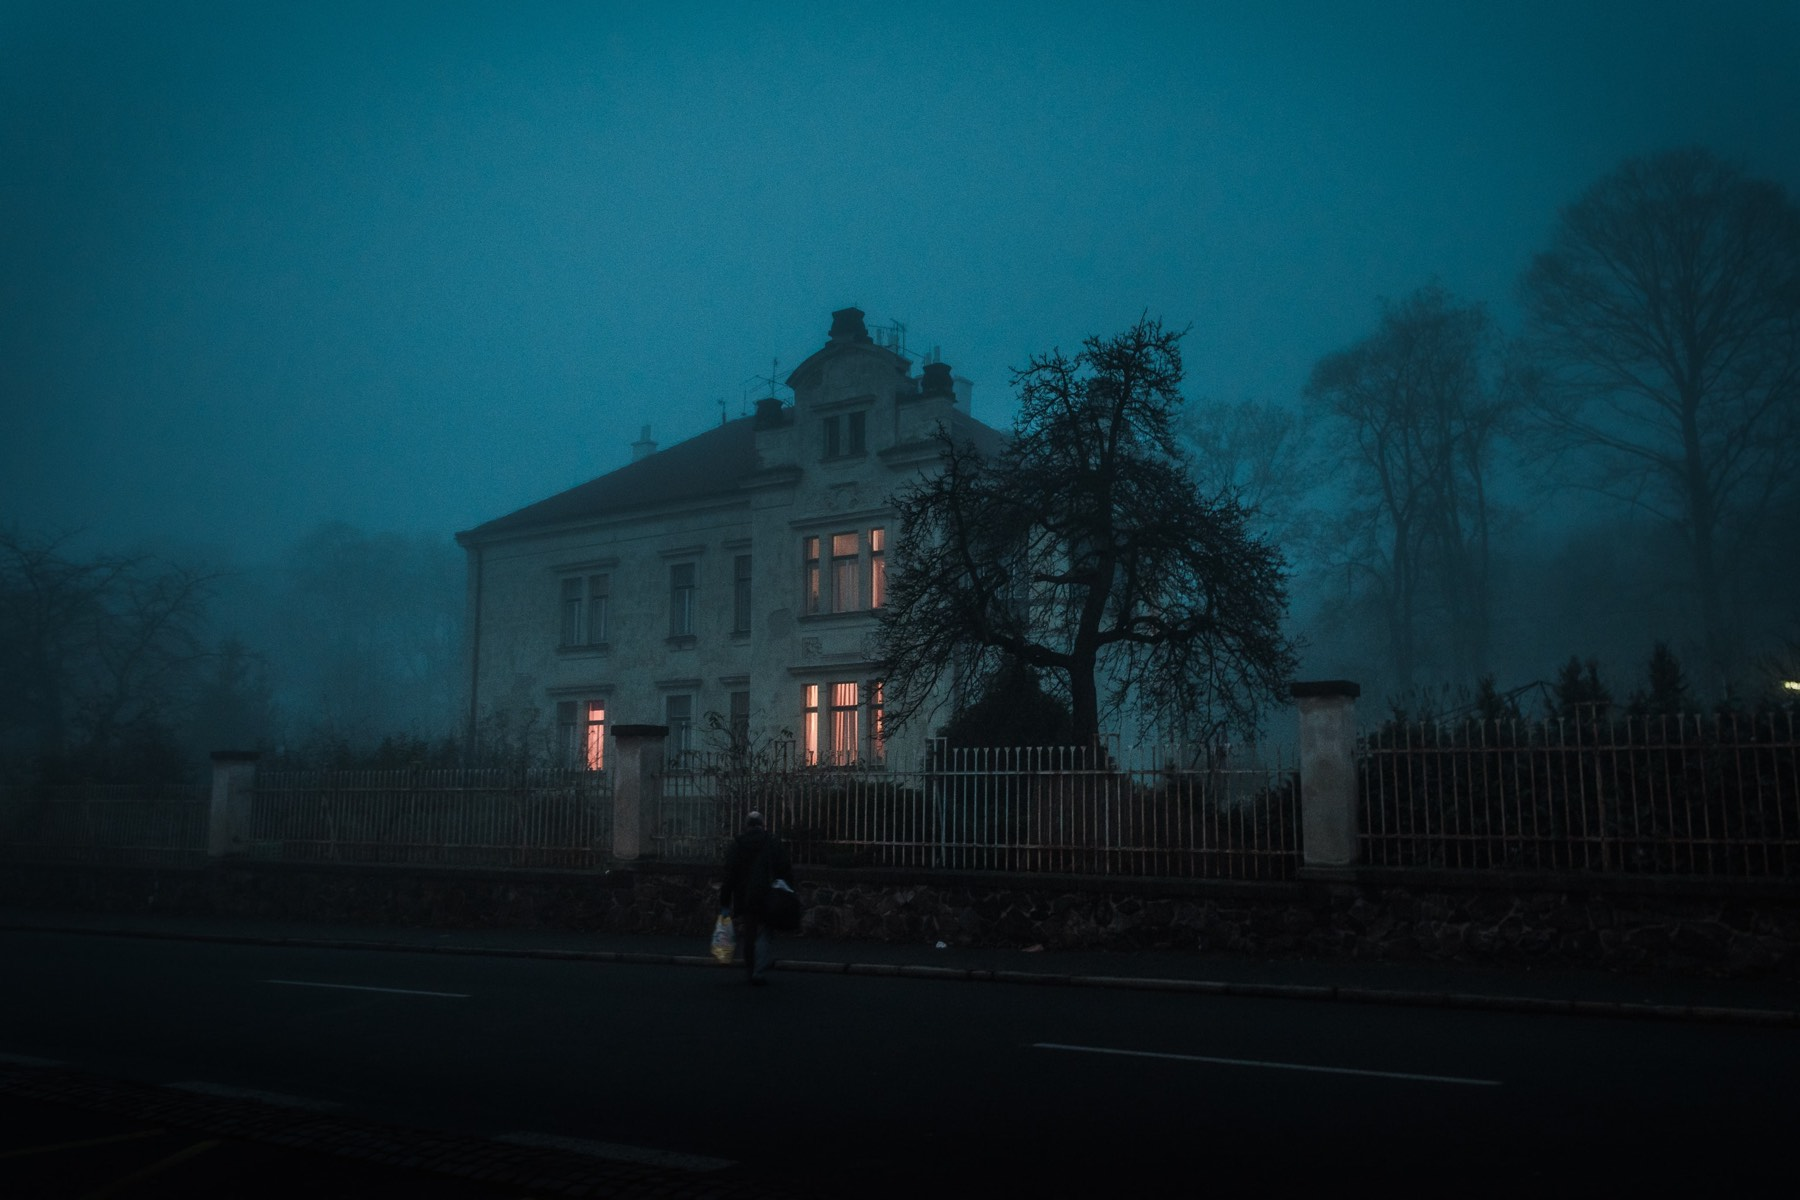 Killer party: 5 haunted places to inspire your best Halloween bash yet